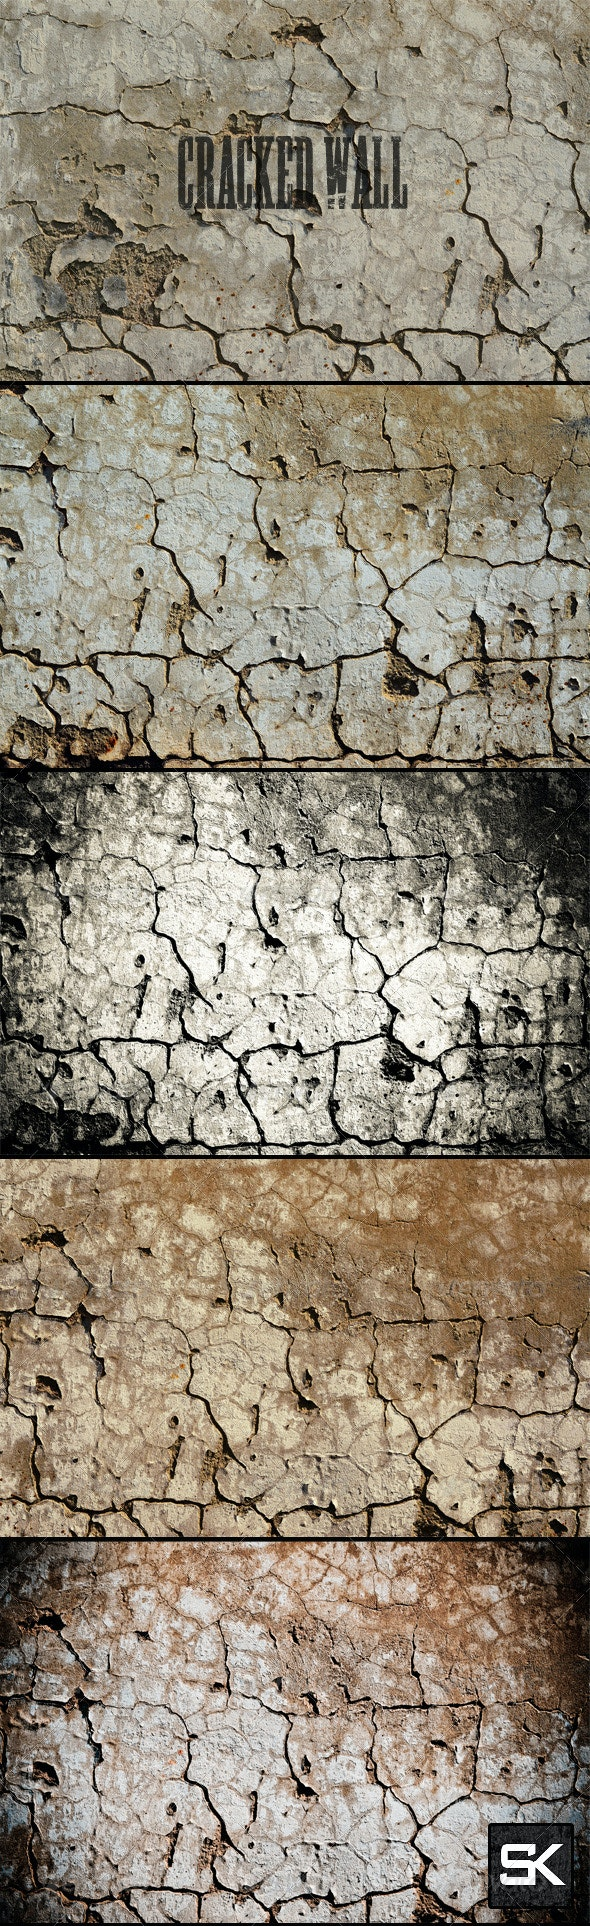 Cracked Wall - Industrial / Grunge Textures